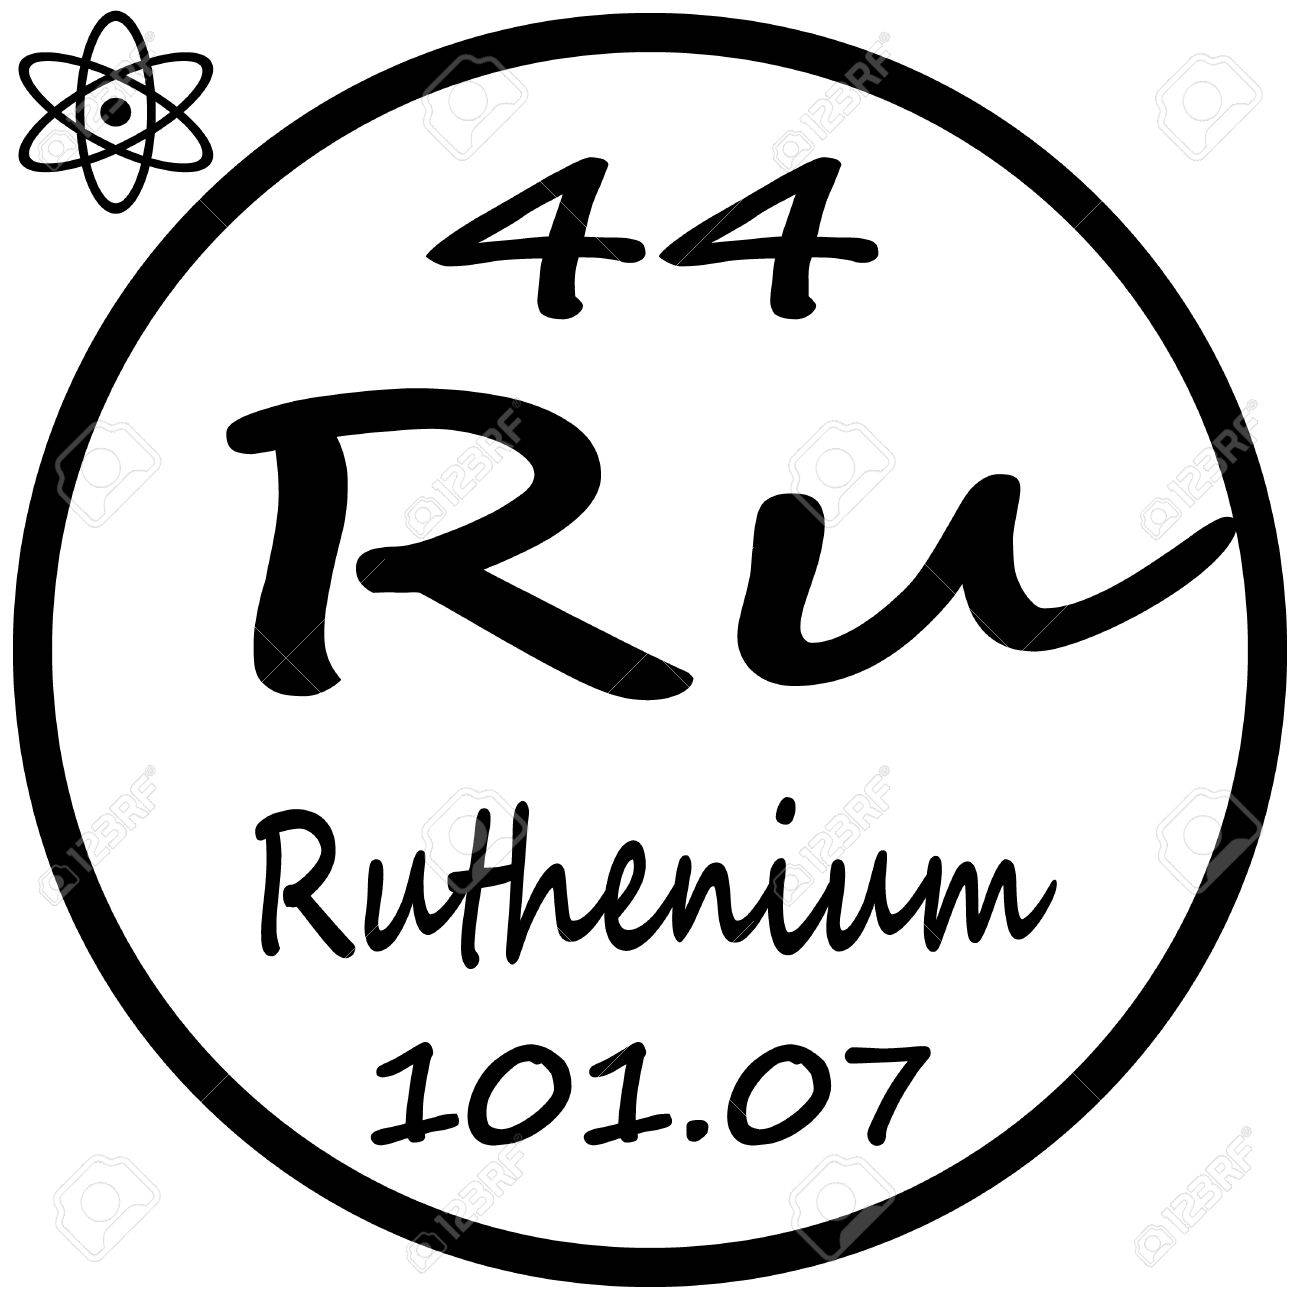 Periodic table of elements ruthenium royalty free cliparts periodic table of elements ruthenium stock vector 53482493 gamestrikefo Choice Image